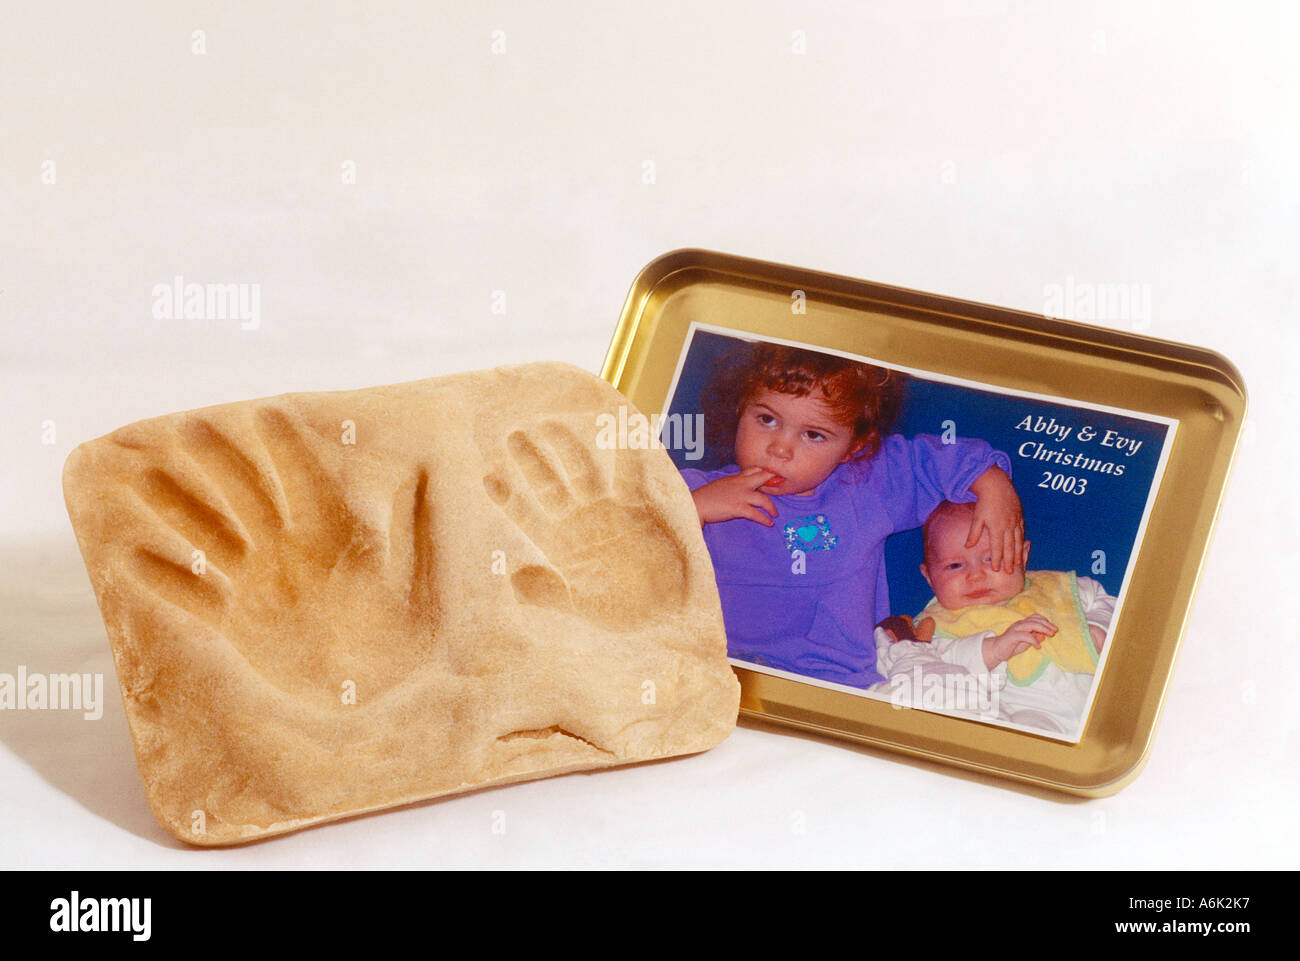 Keepsake - Hand Prints of 3 Month Old Baby & 2 Year Old Sisters USA - Stock Image